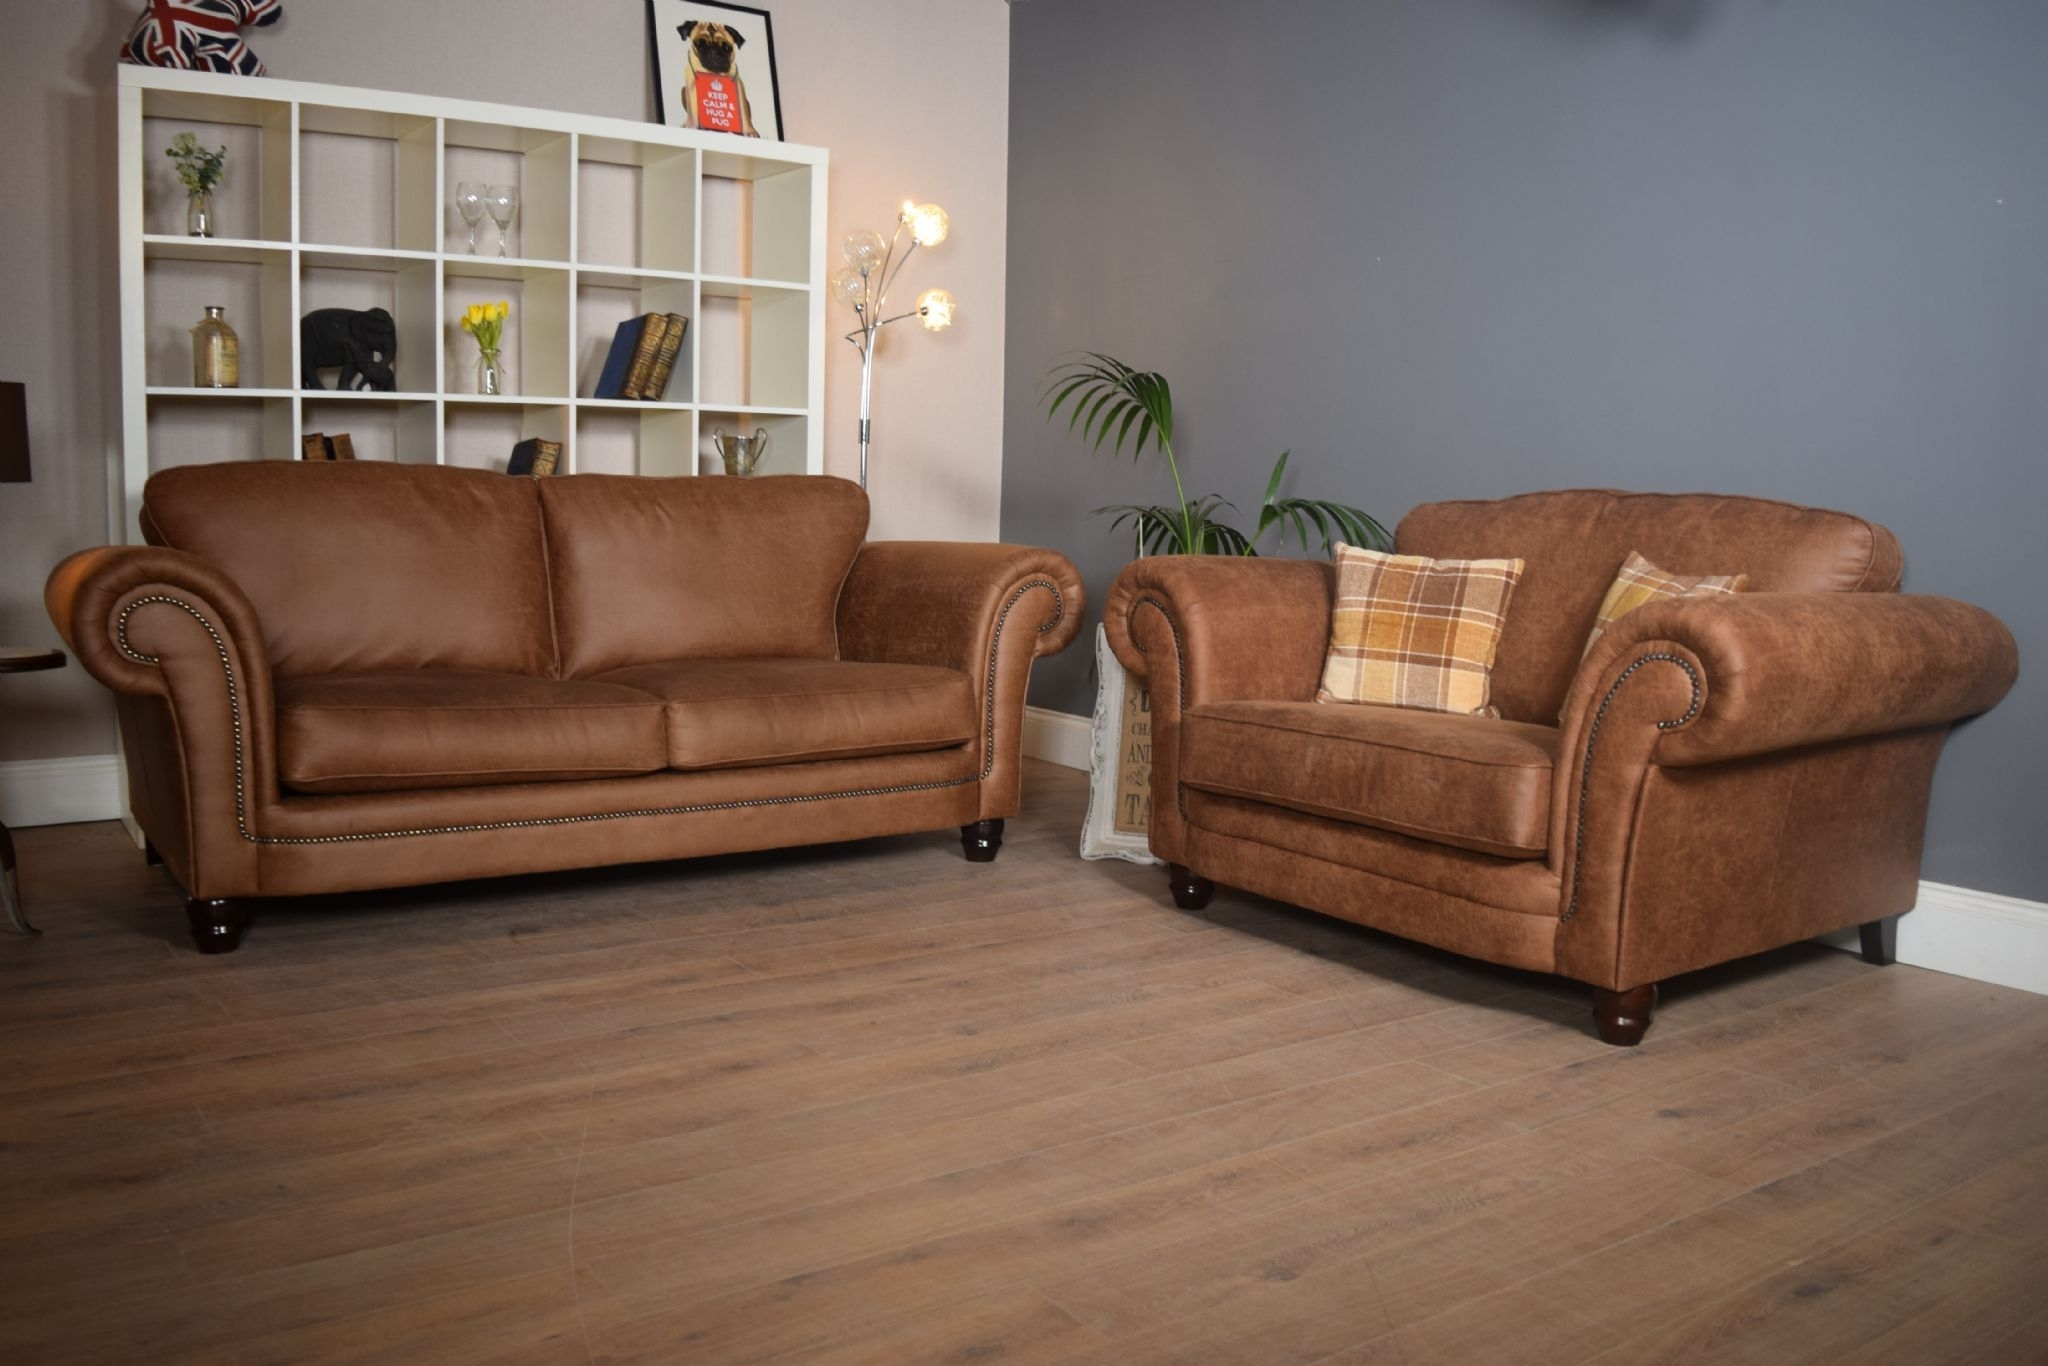 Set Abbey Downton 3 Seater Sofa & Large Cuddle Chair – Tan Fitted Regarding 3 Seater Sofas And Cuddle Chairs (View 4 of 10)